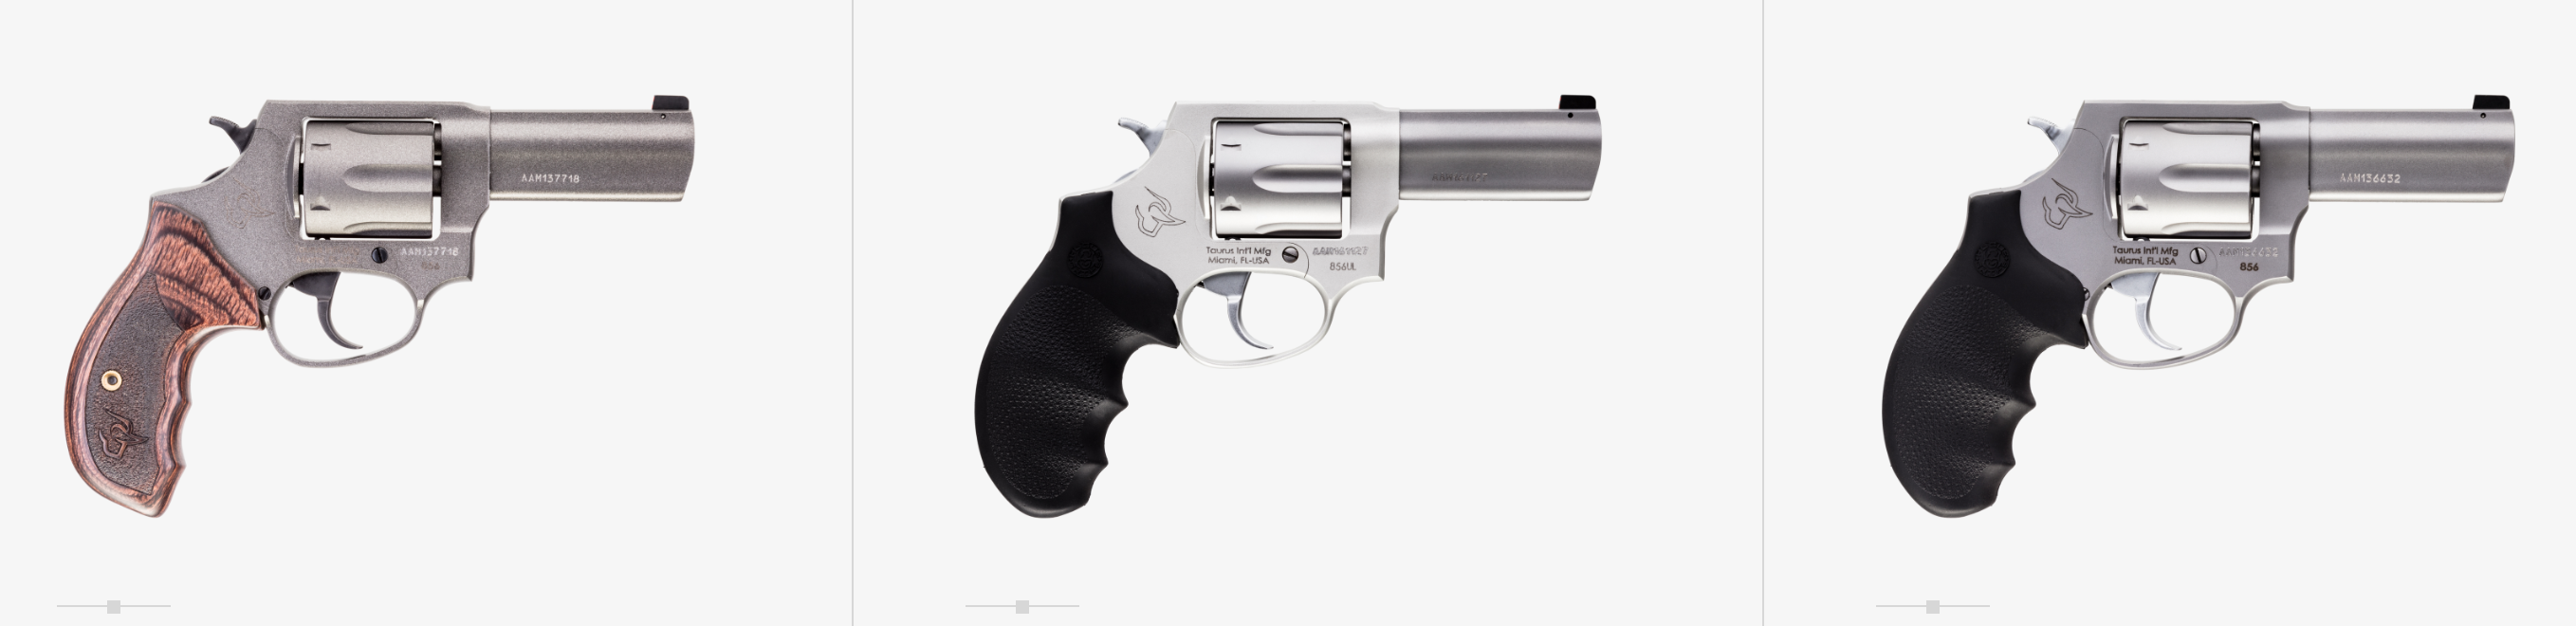 Taurus, wheel guns, revolvers, Taurus 856, crossbreed holsters, concealed carry, best iwb holsters, hybrid holsters, taurus guns, new revolvers, SHOT Show, best owb holster, most comfortable holster,